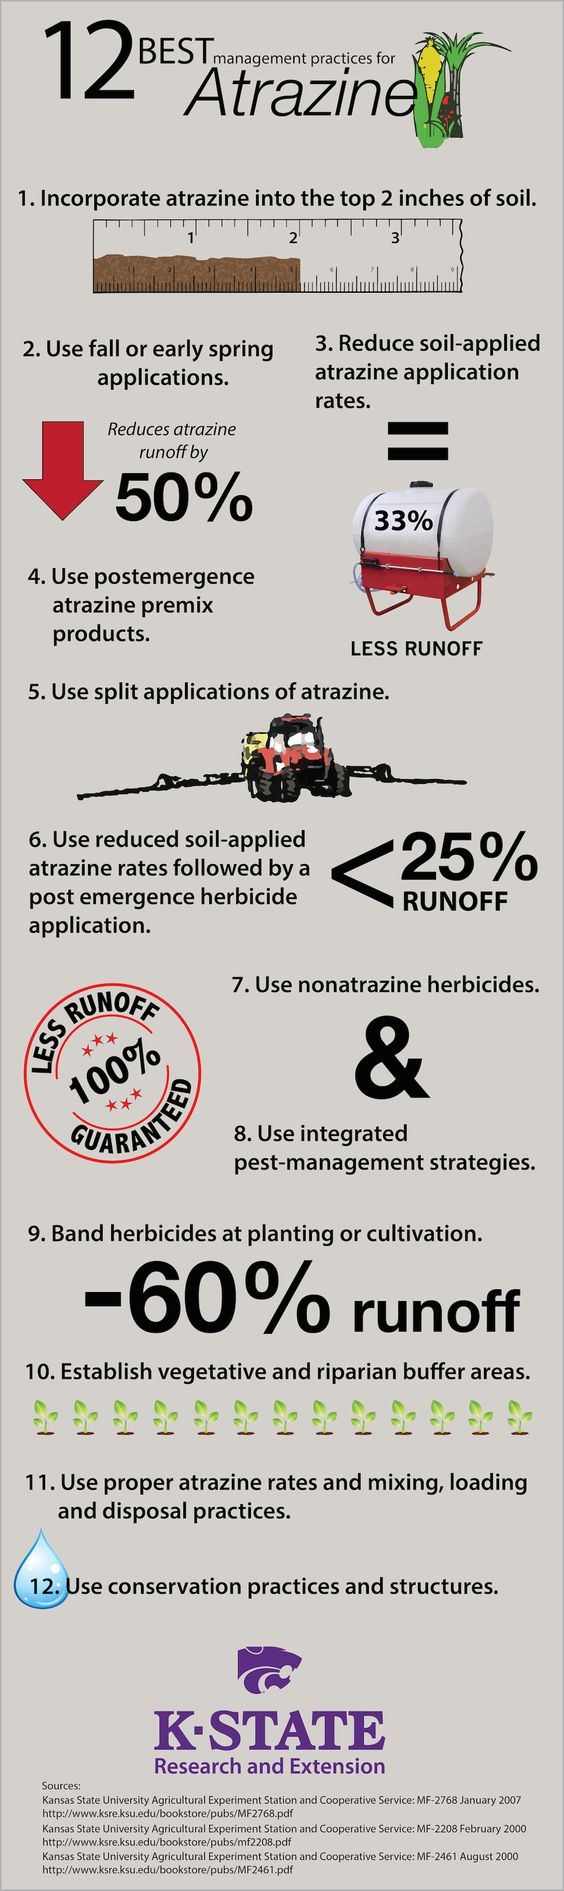 Prevent atrazine #herbicide runoff. #water #conservation #KState